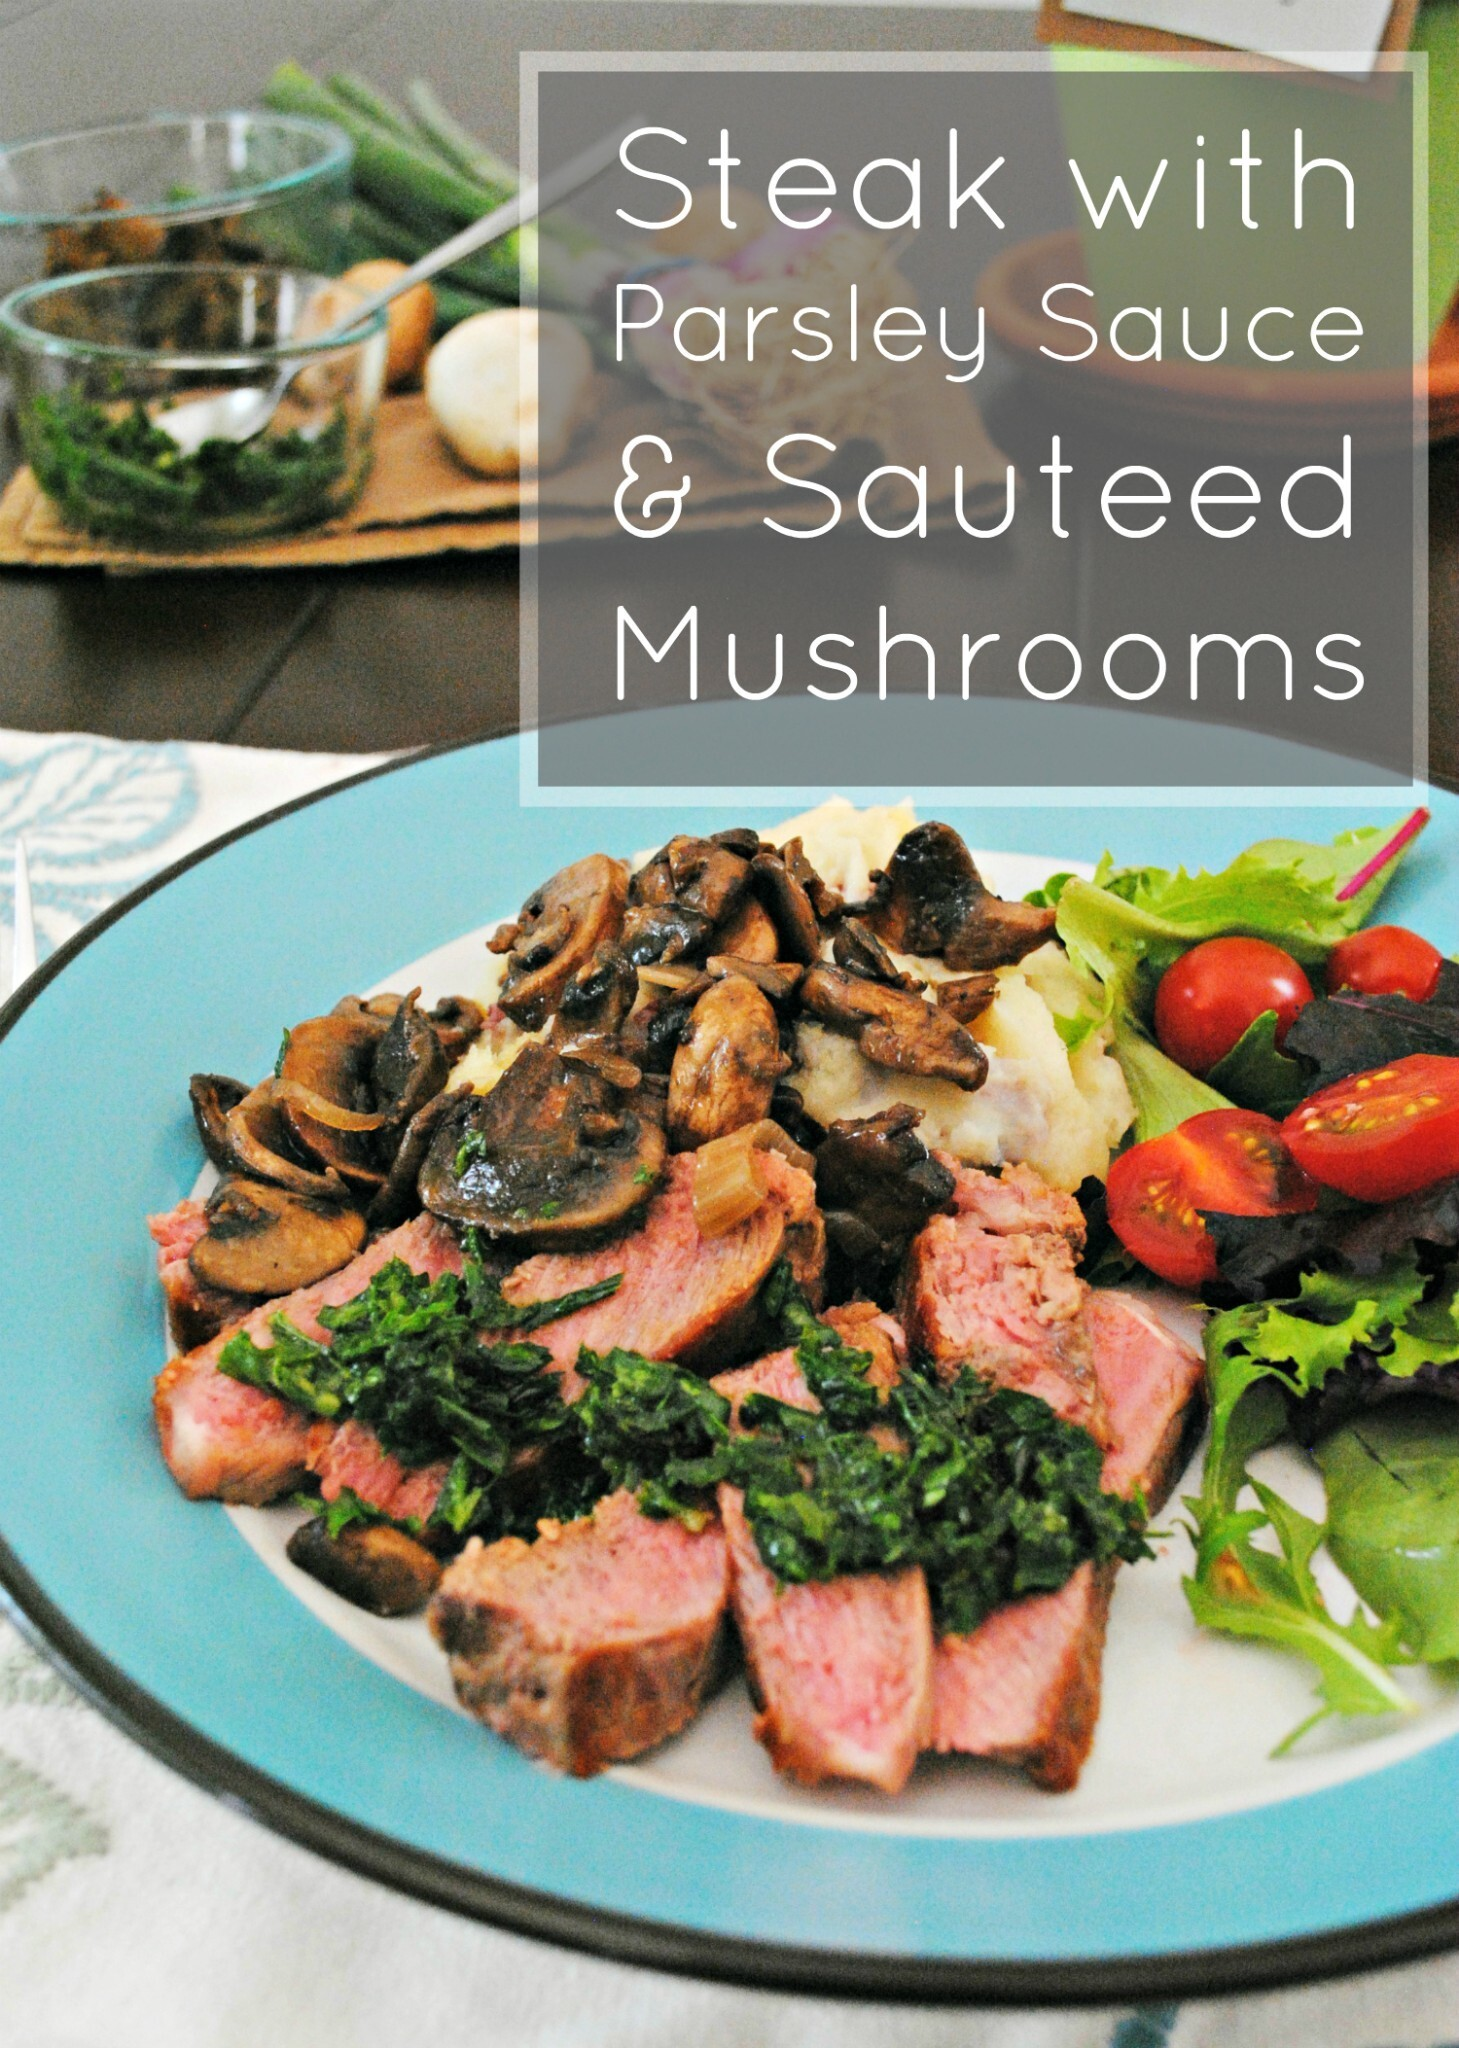 Steak with Parsley Sauce and Sauteed Mushrooms